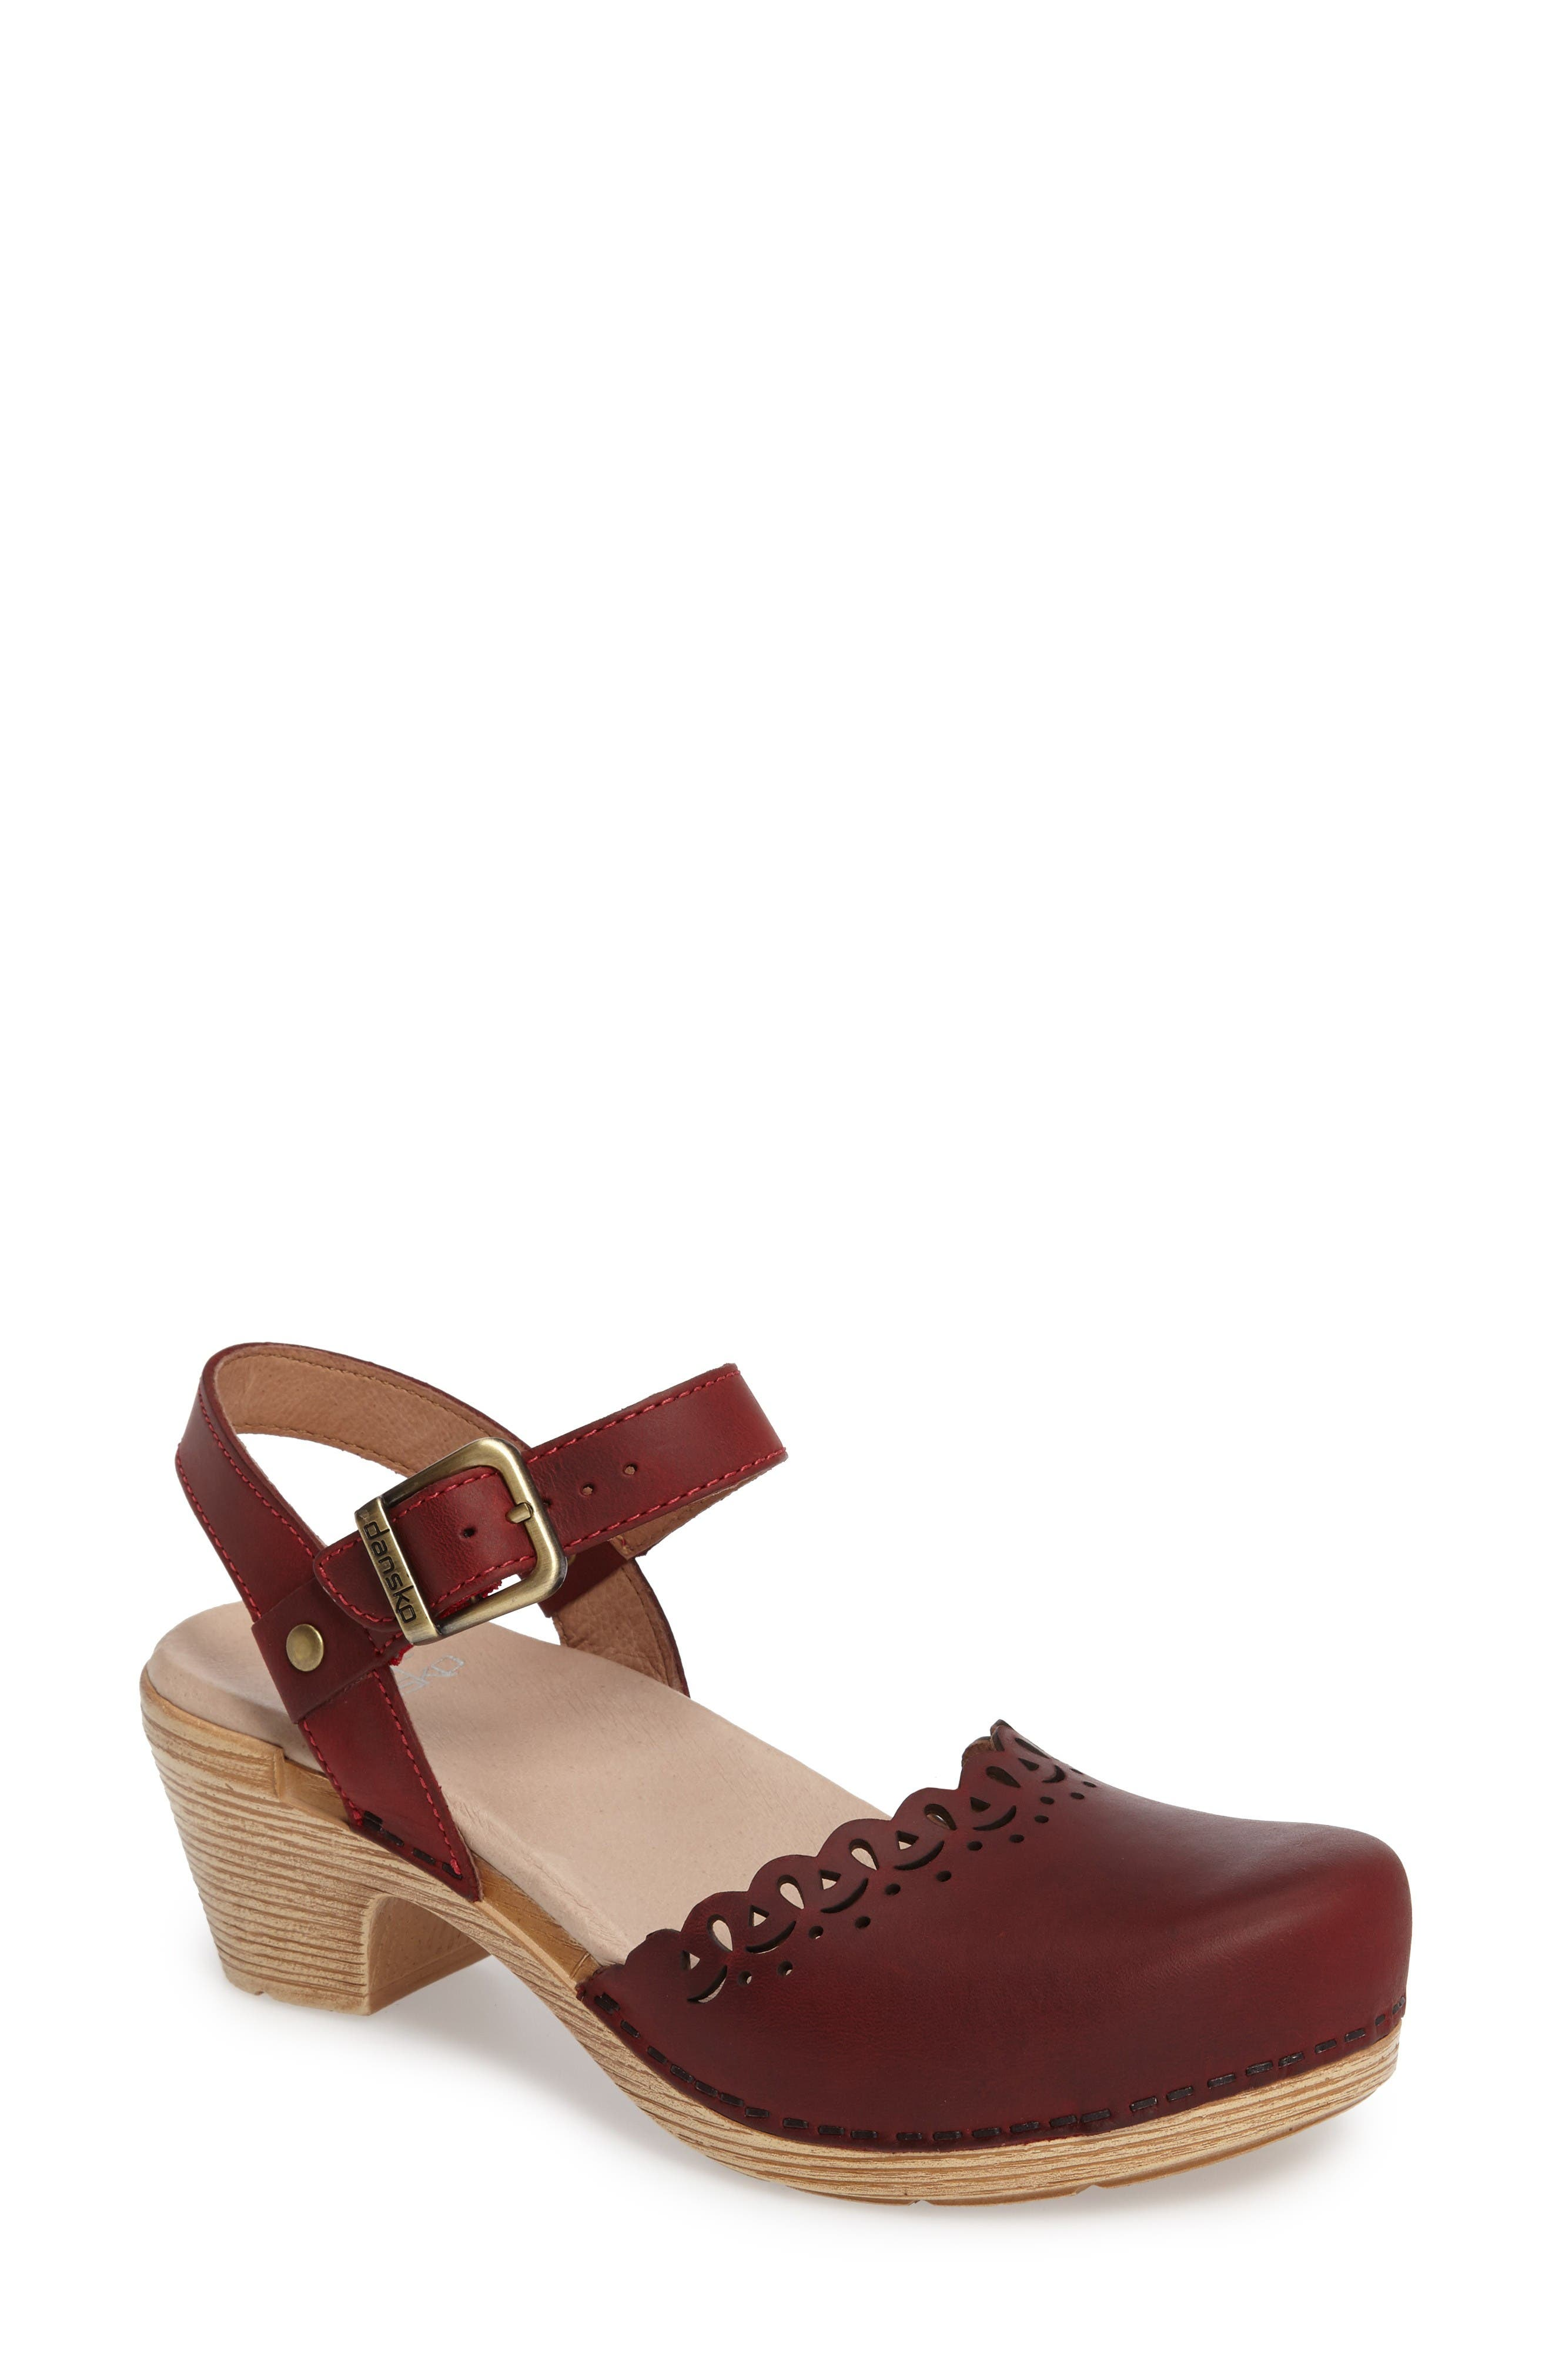 'Marta' Ankle Strap Clog,                             Main thumbnail 1, color,                             Red Oiled Leather